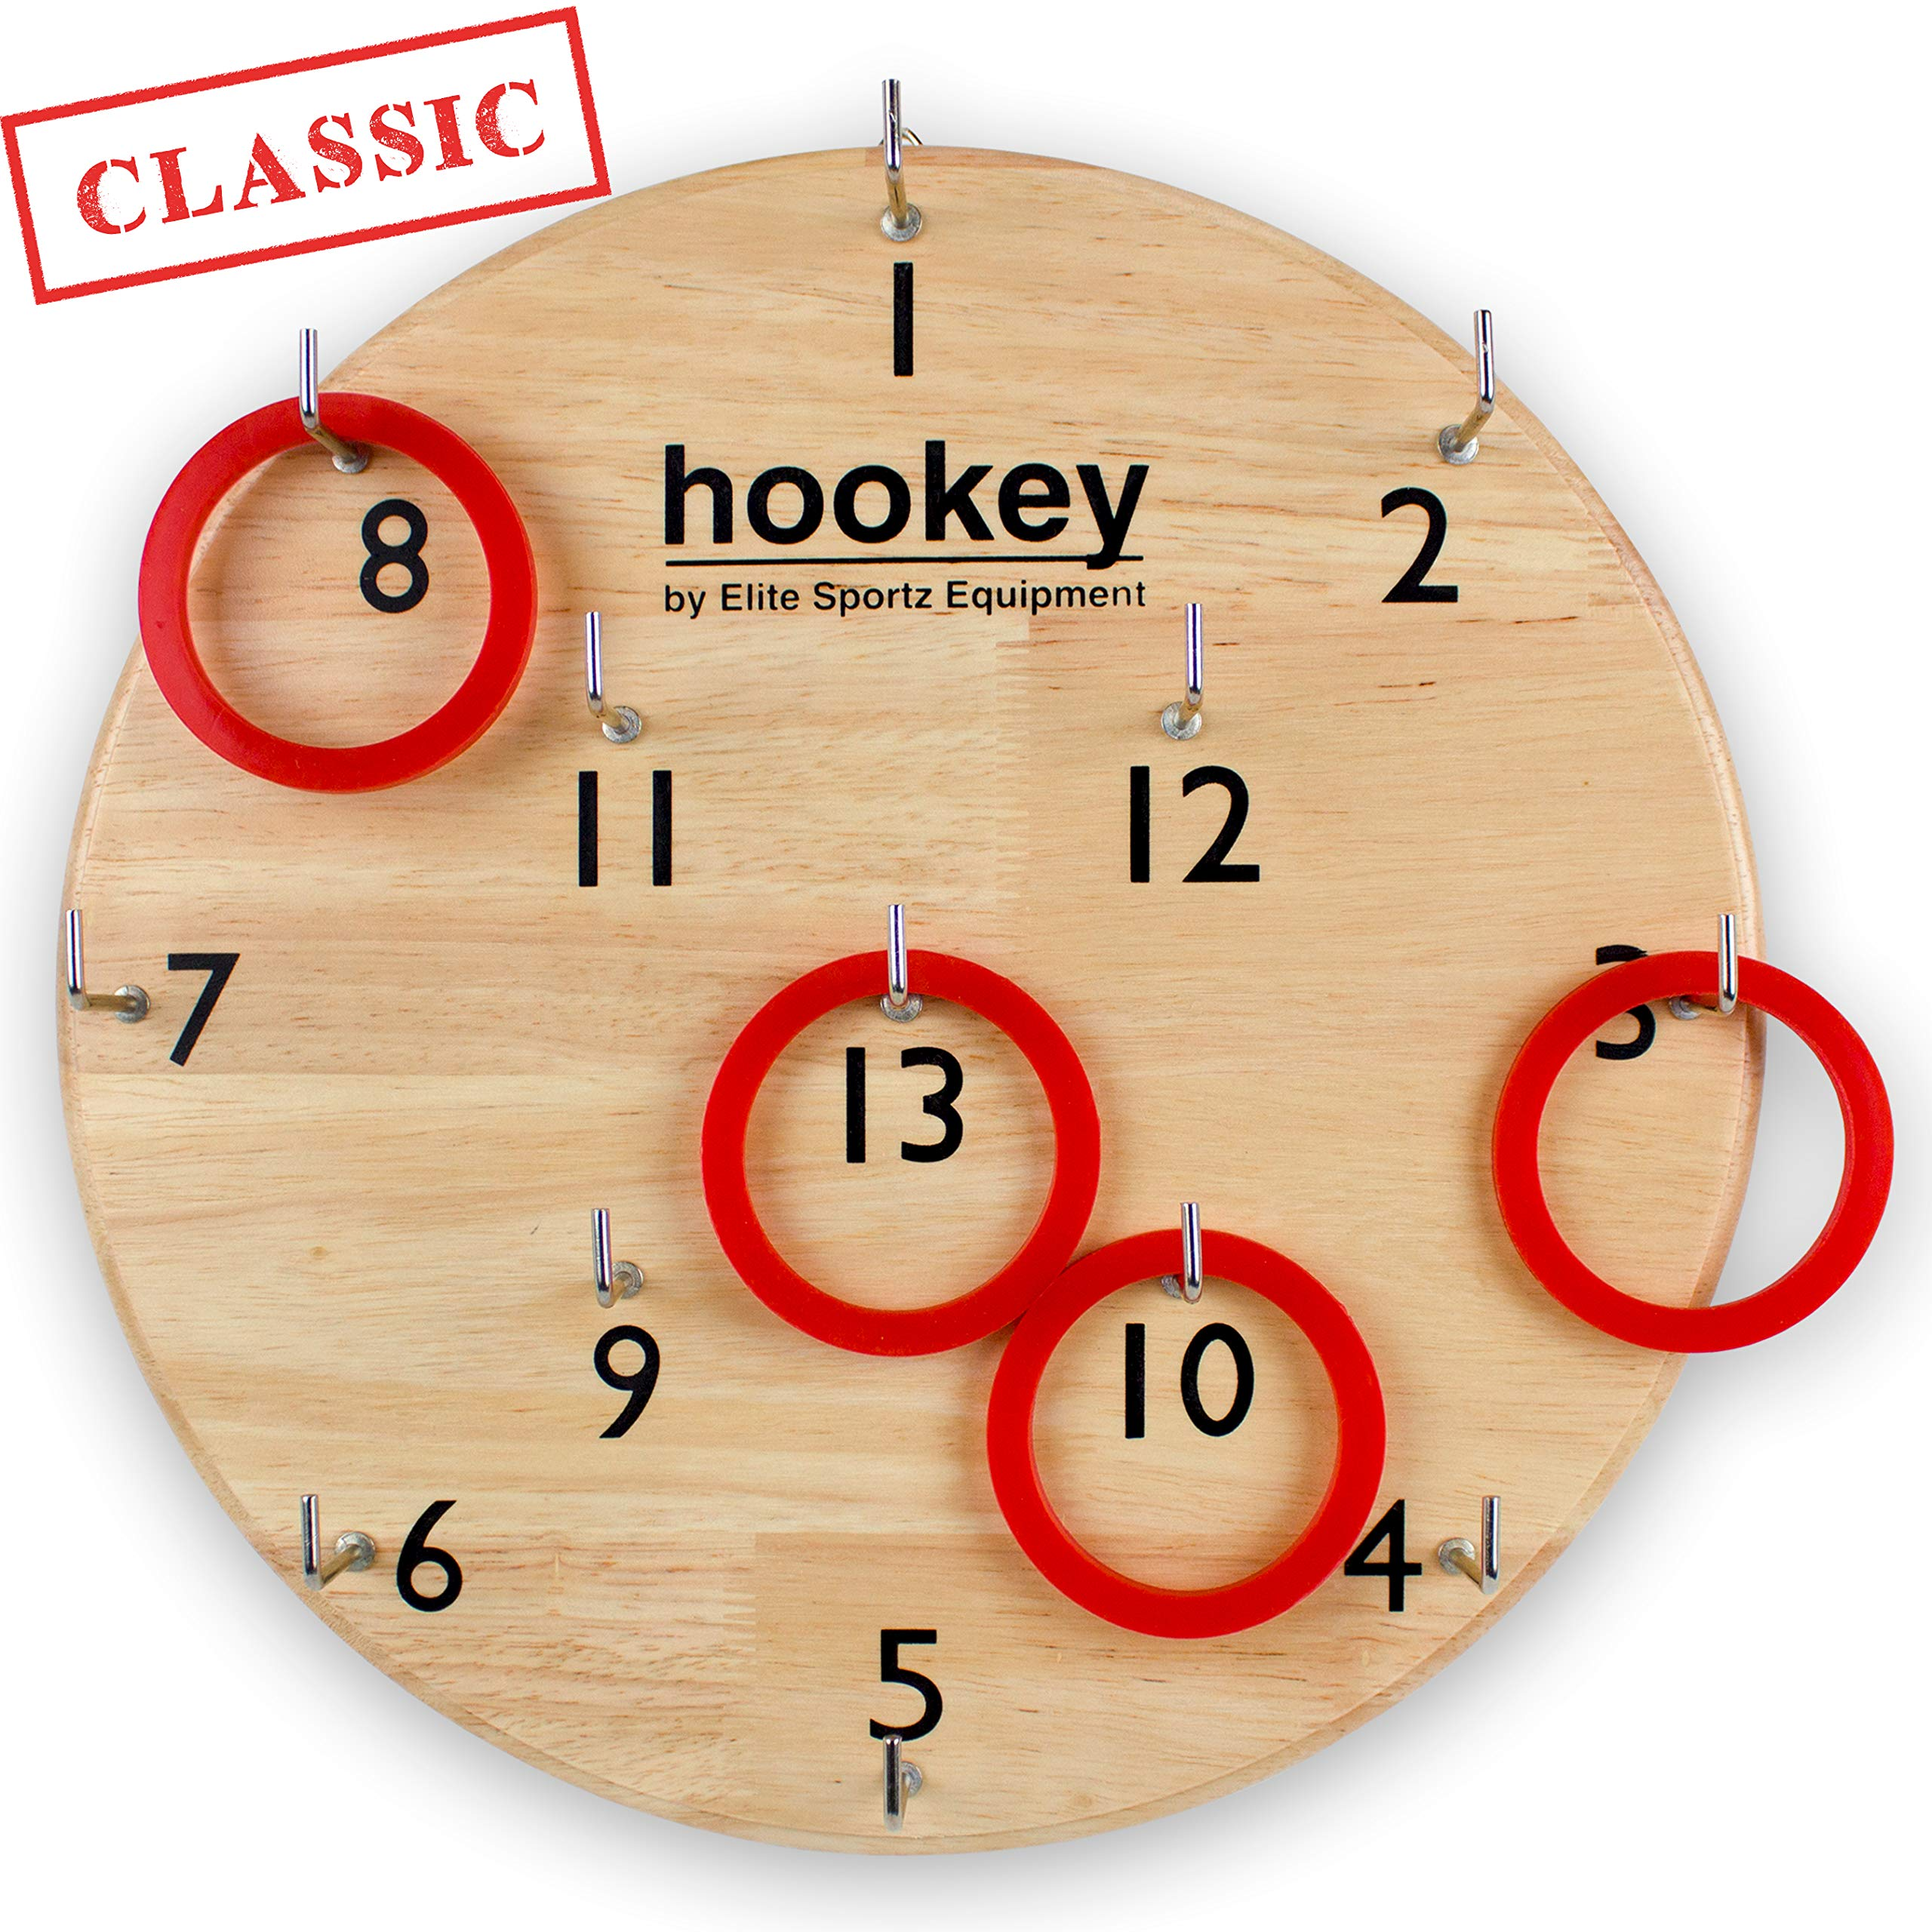 Elite Sportz Gifts for Men, Teens and Safe Games for Kids - Our Beautifully Finished Hookey Games Make Great Christmas Gifts for All. Easy Set-Up, Simply Hang and Play by Elite Sportz Equipment